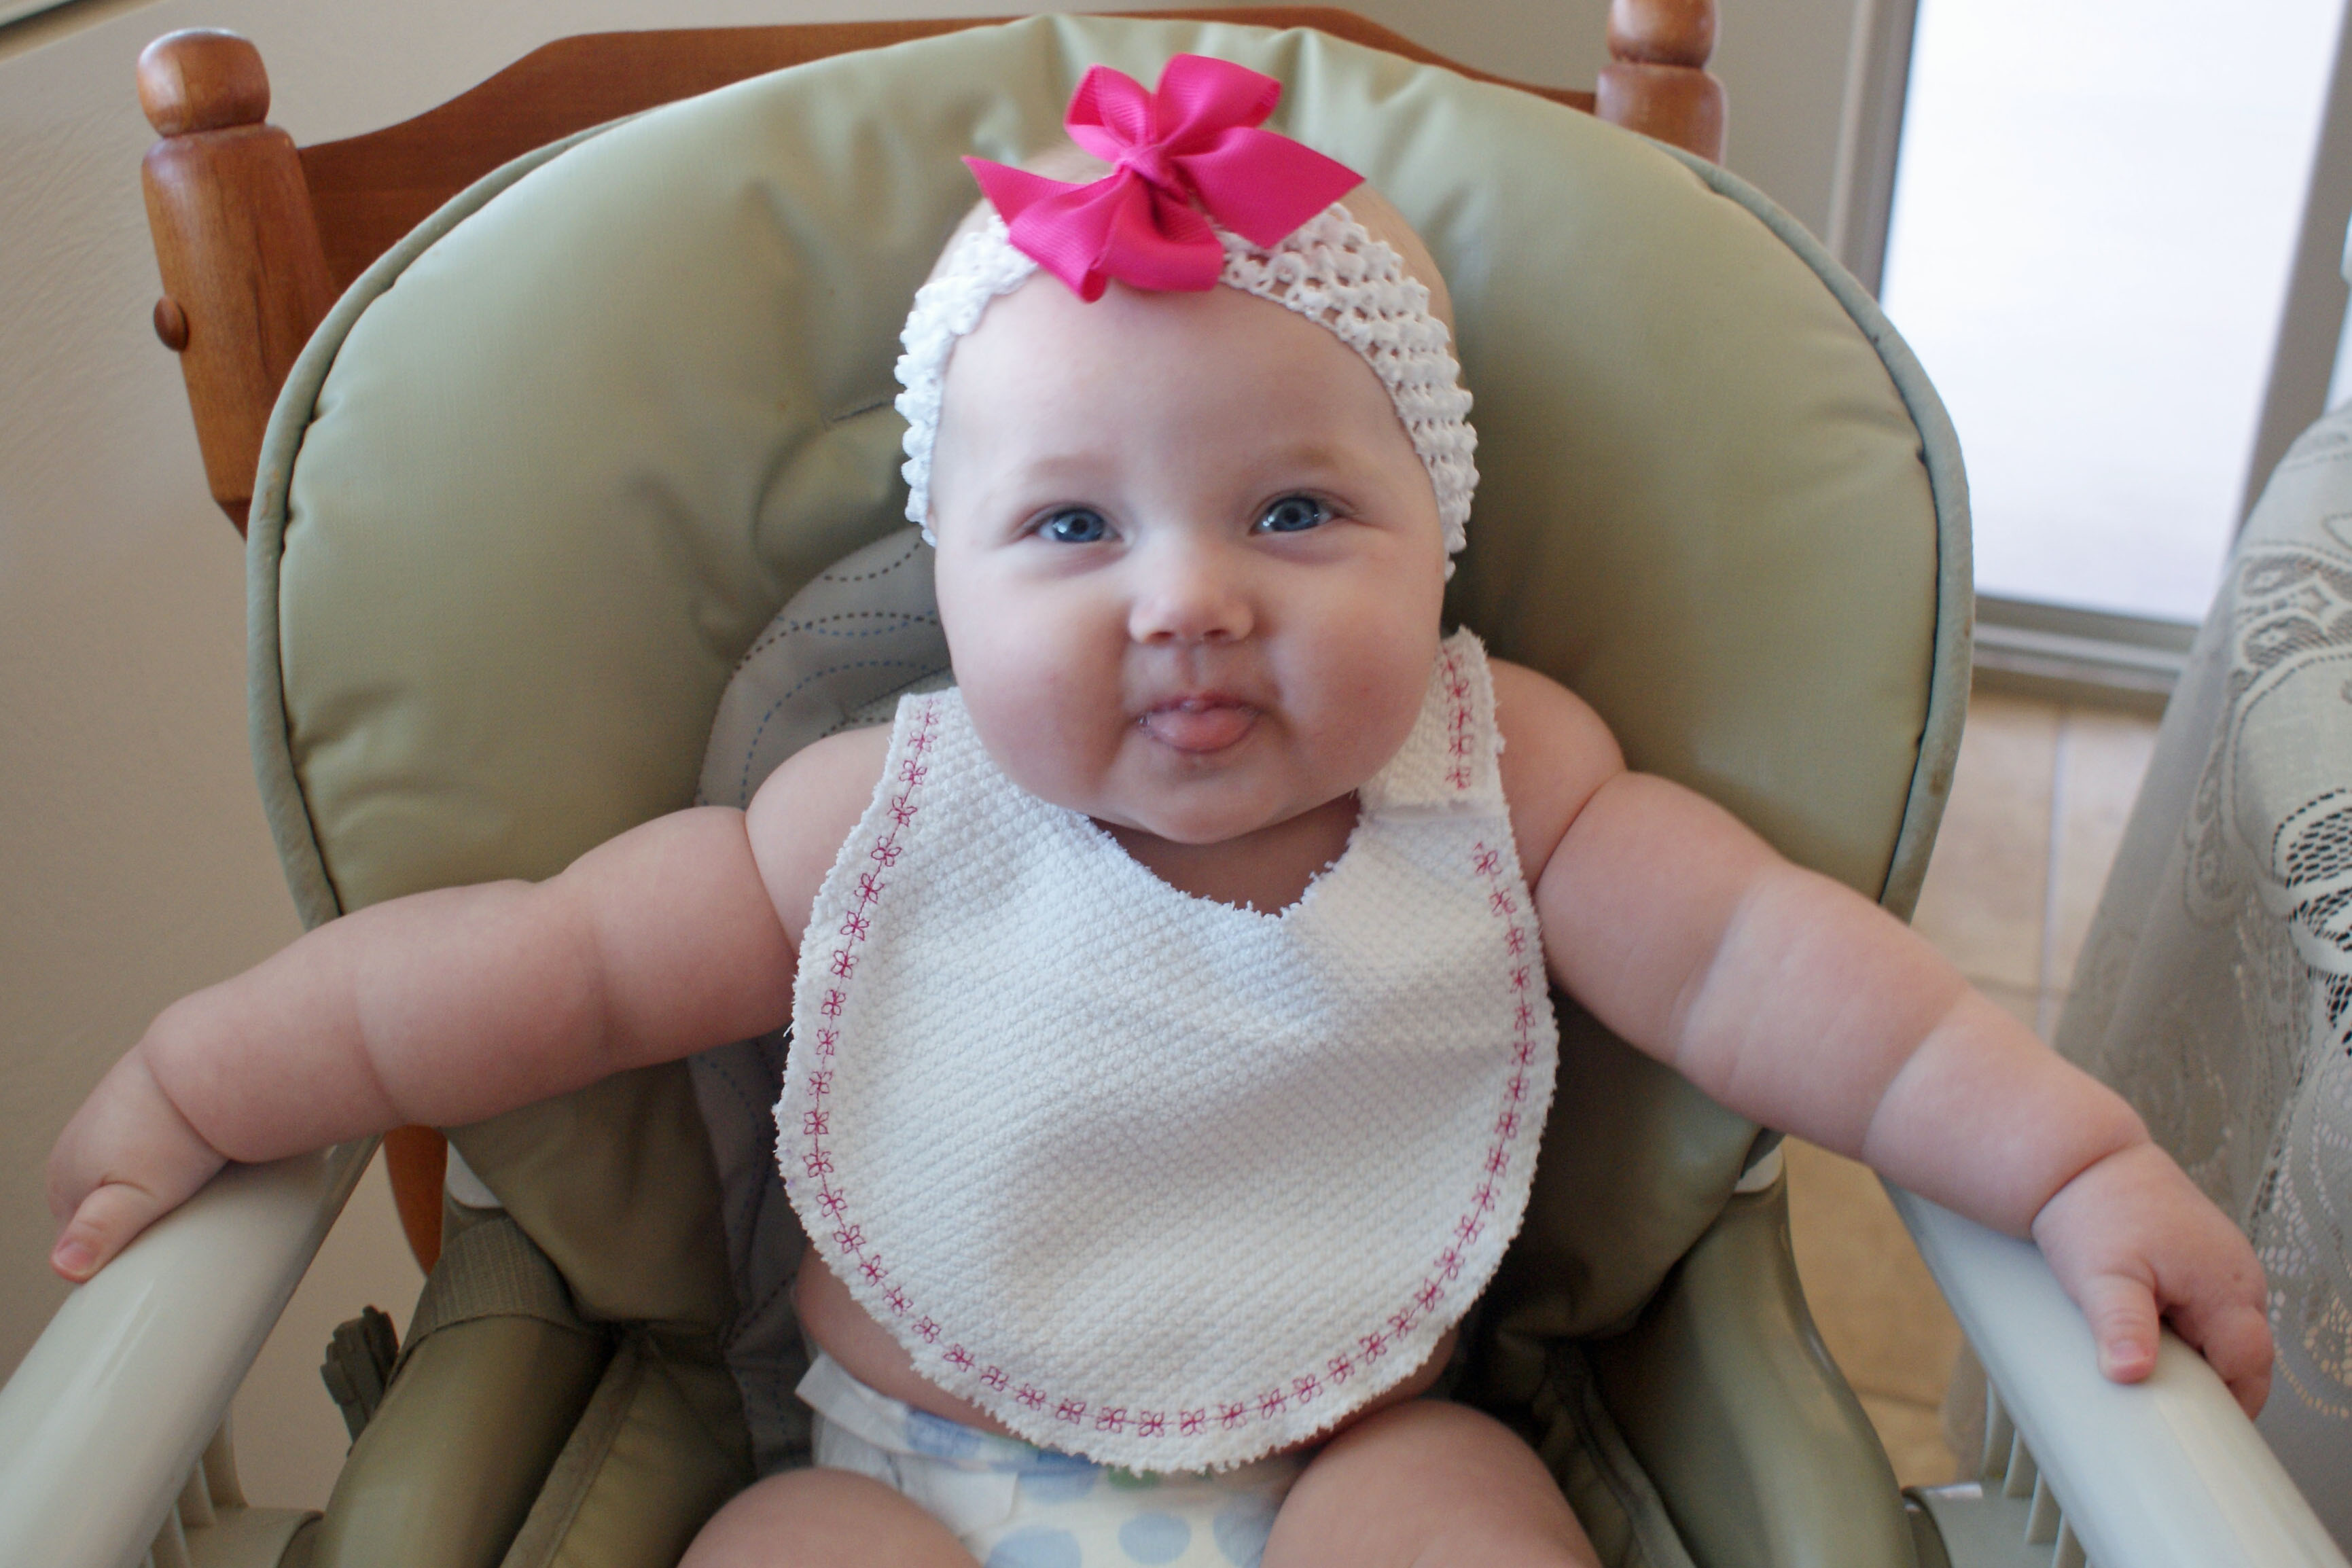 Infant Blanks offers a complete line of infant layette garments - all the basics and specialty items for all your newborn and infant needs. Our products are manufactured using the highest quality materials and utilizing the latest textile technology.